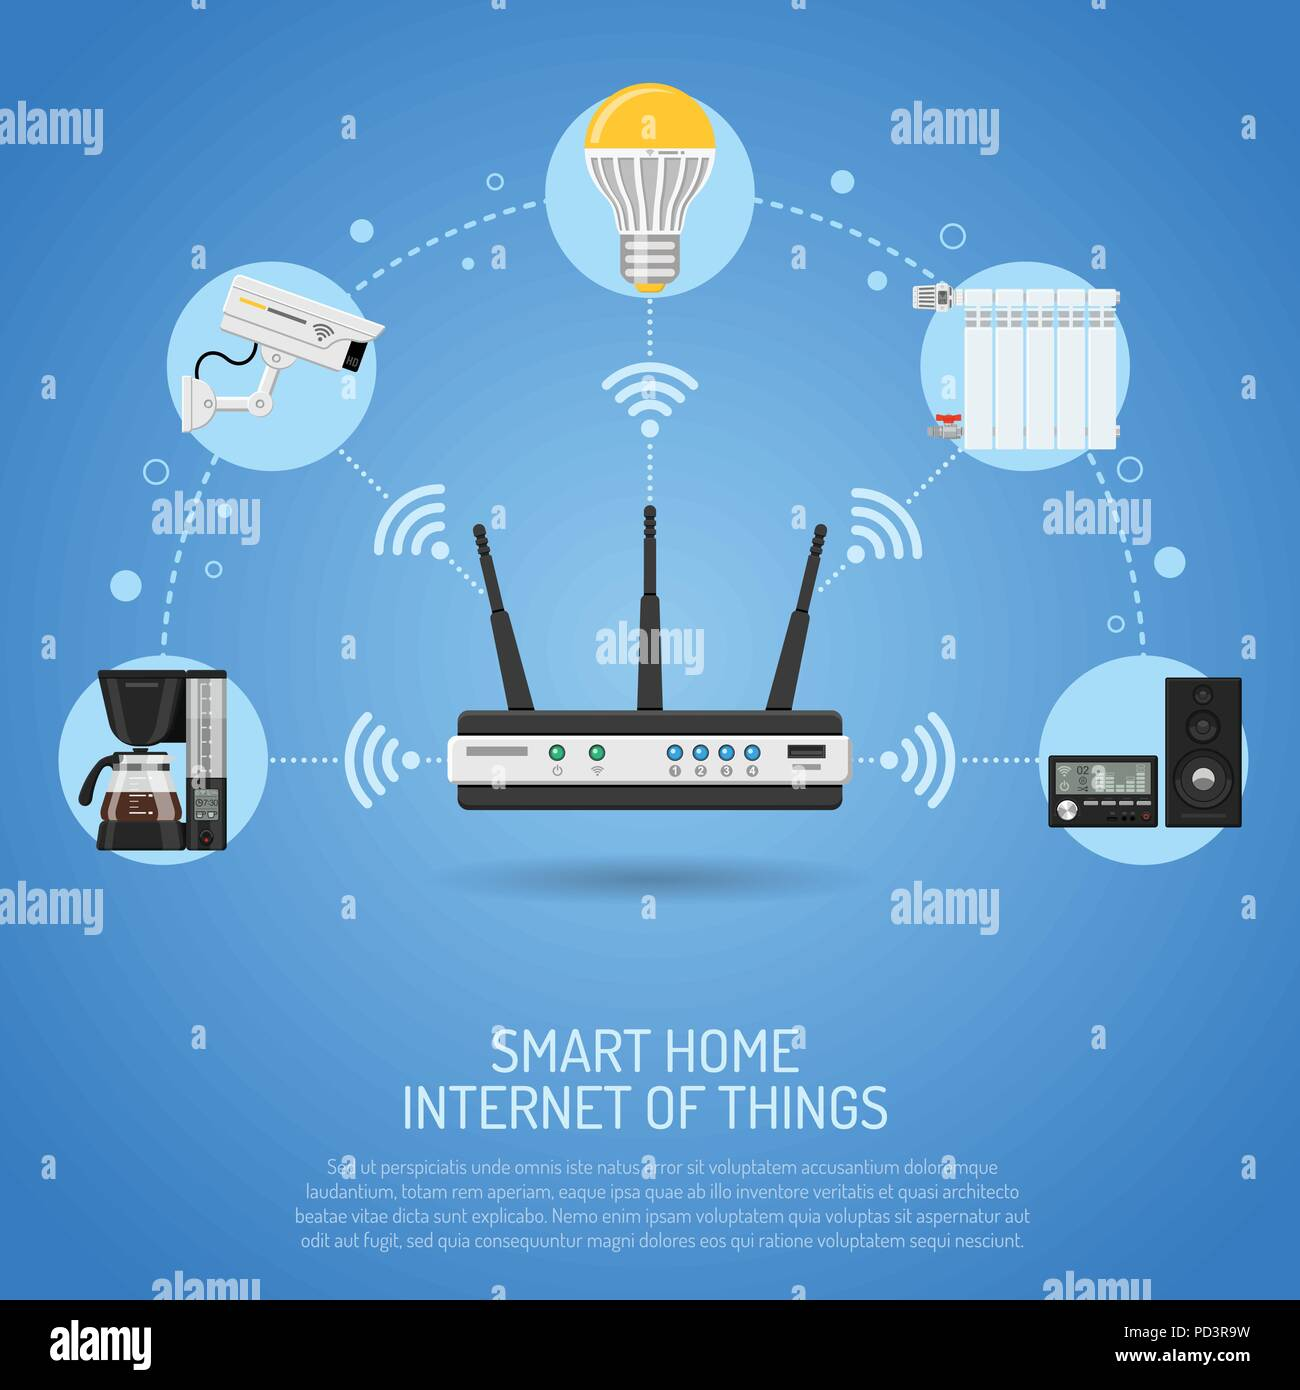 Smart Home and Internet of Things - Stock Image